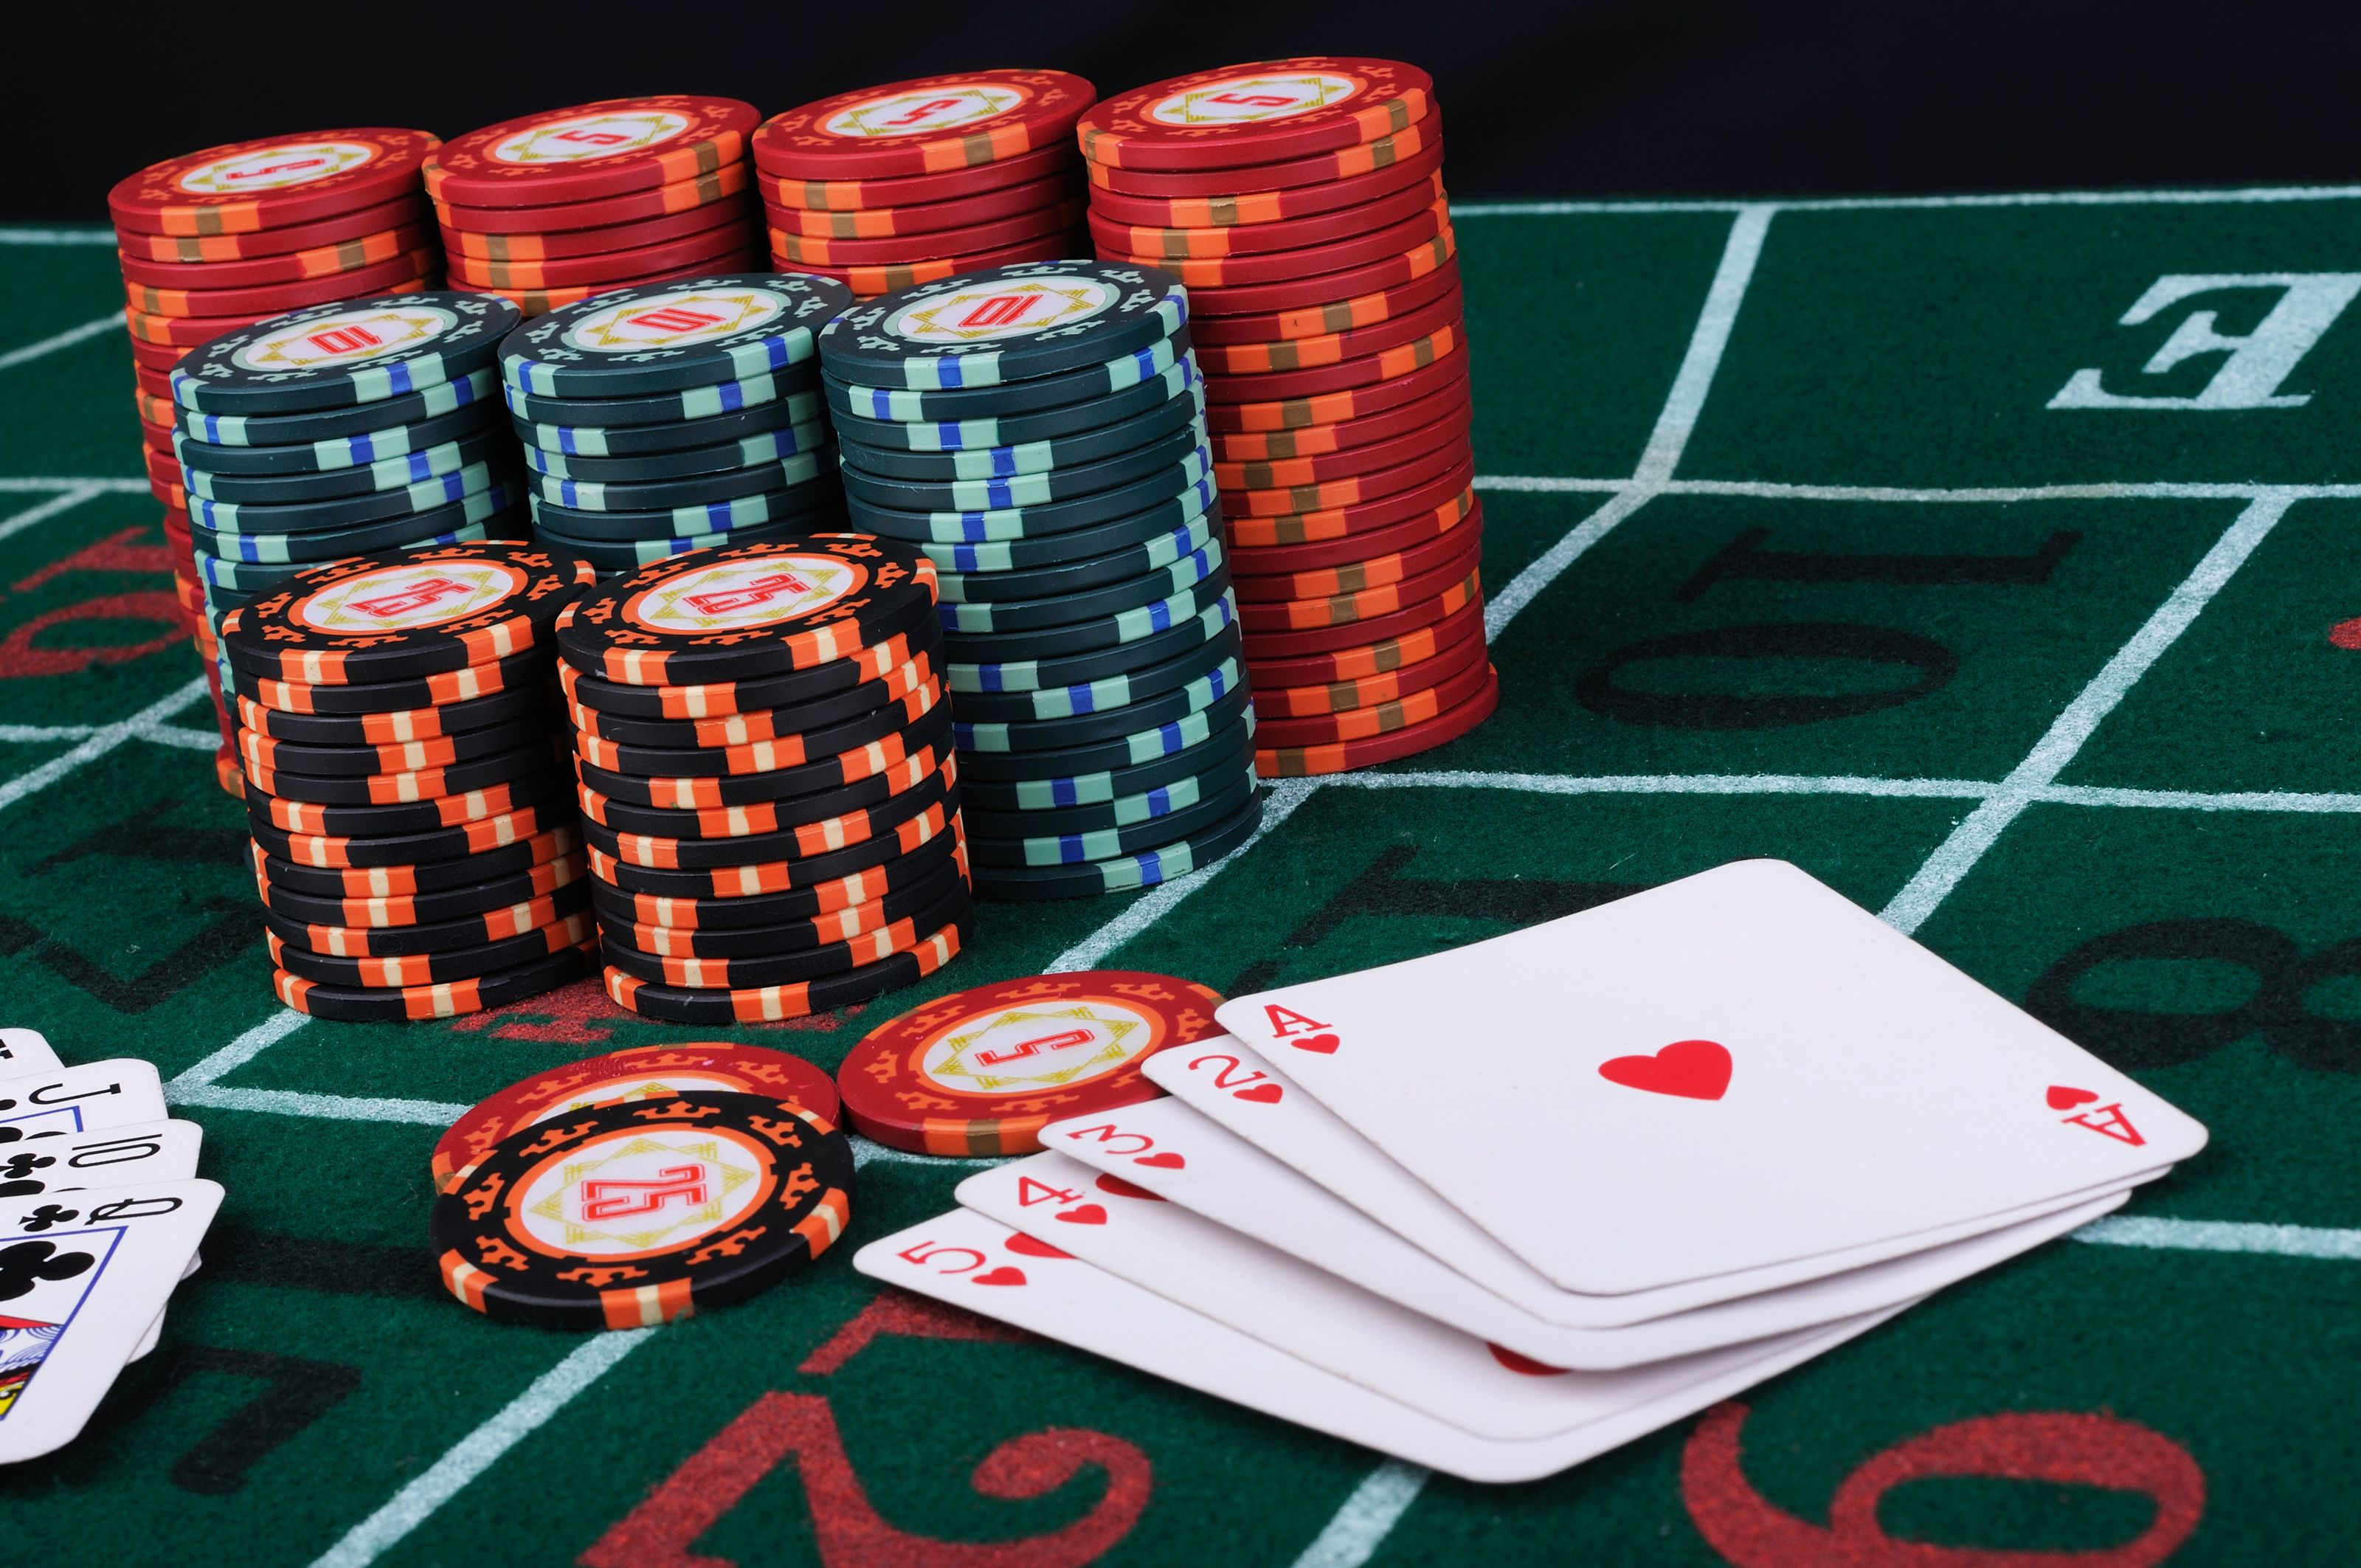 There are big advantages to gambling online as opposed to live games at land-based casinos | Online casino, Play casino games, Casino